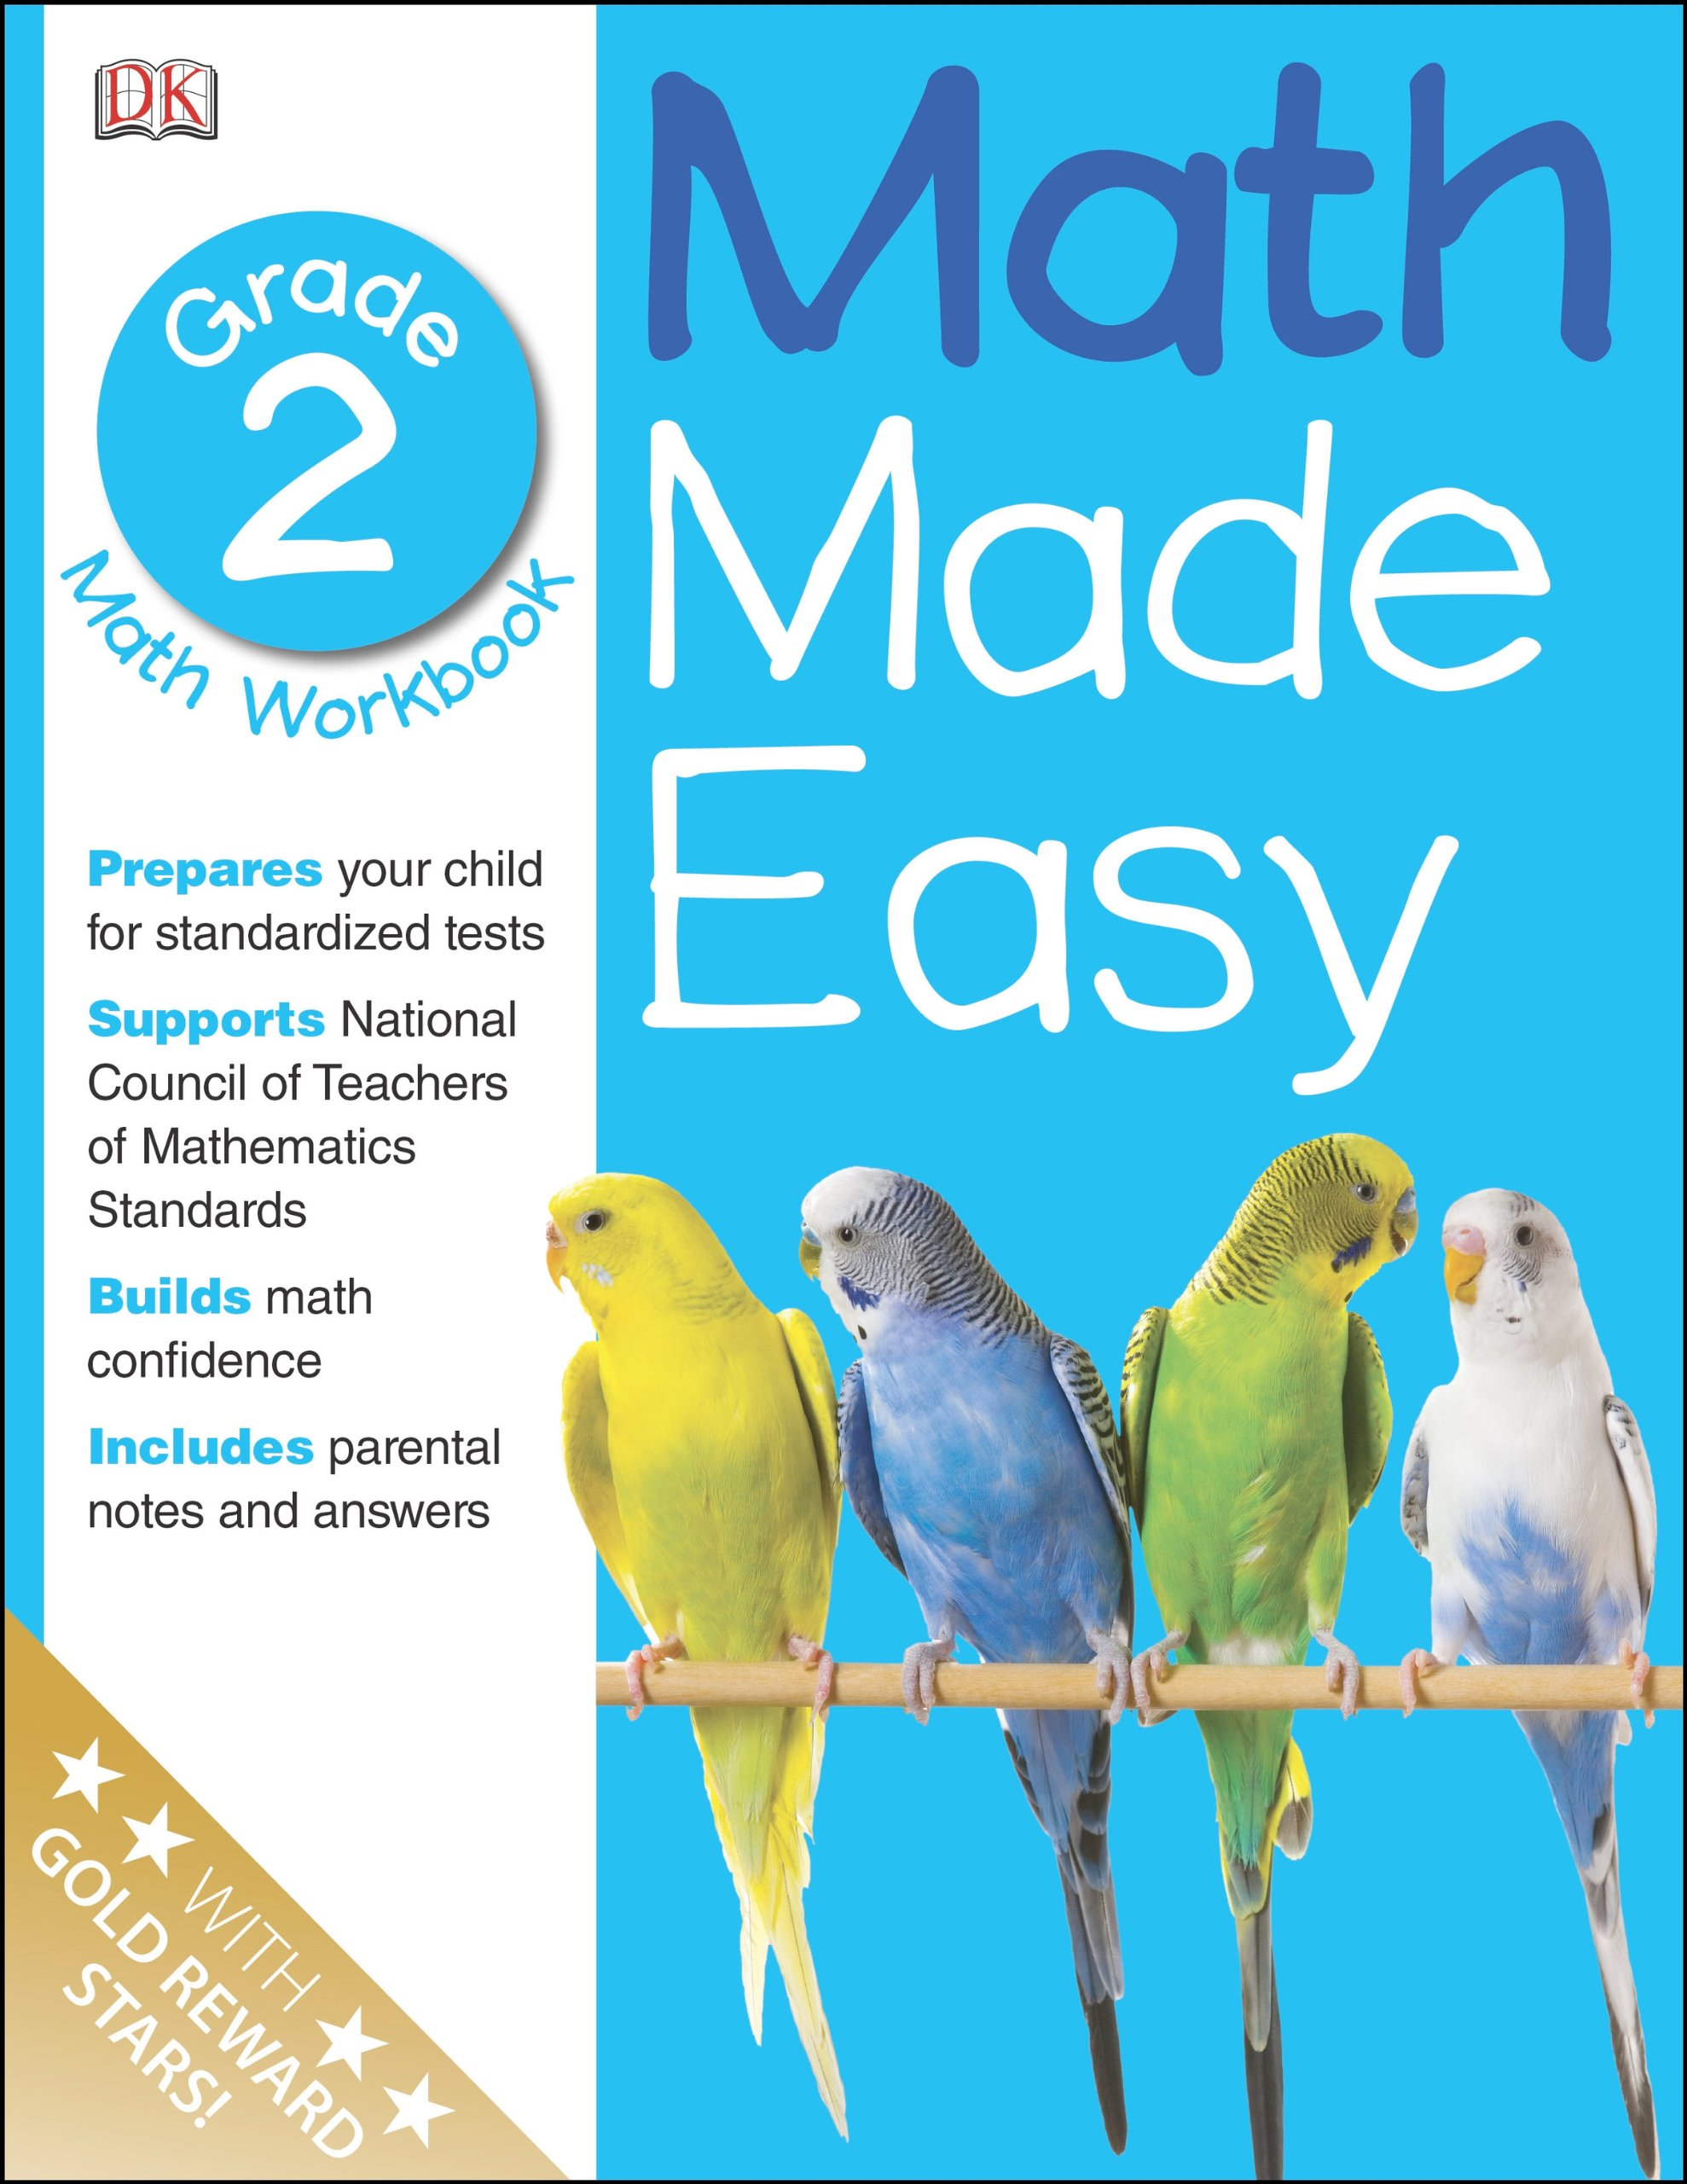 Worksheet 3rd Grade Math Workbook math made easy second grade workbook dk publishing 9780789457288 amazon com books